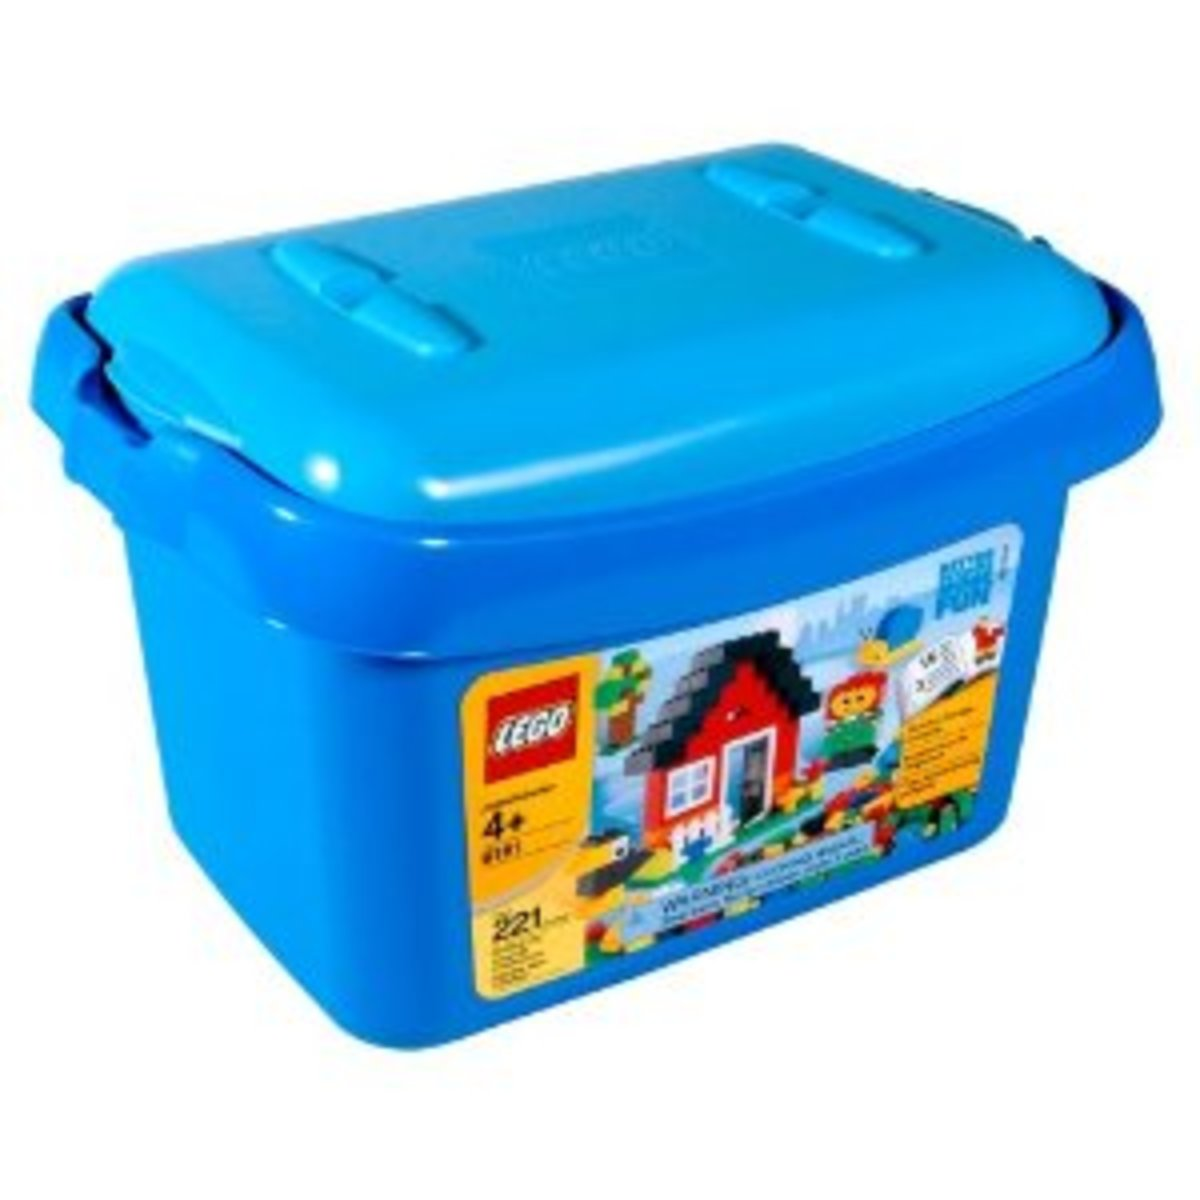 Lego Blue Brick Set